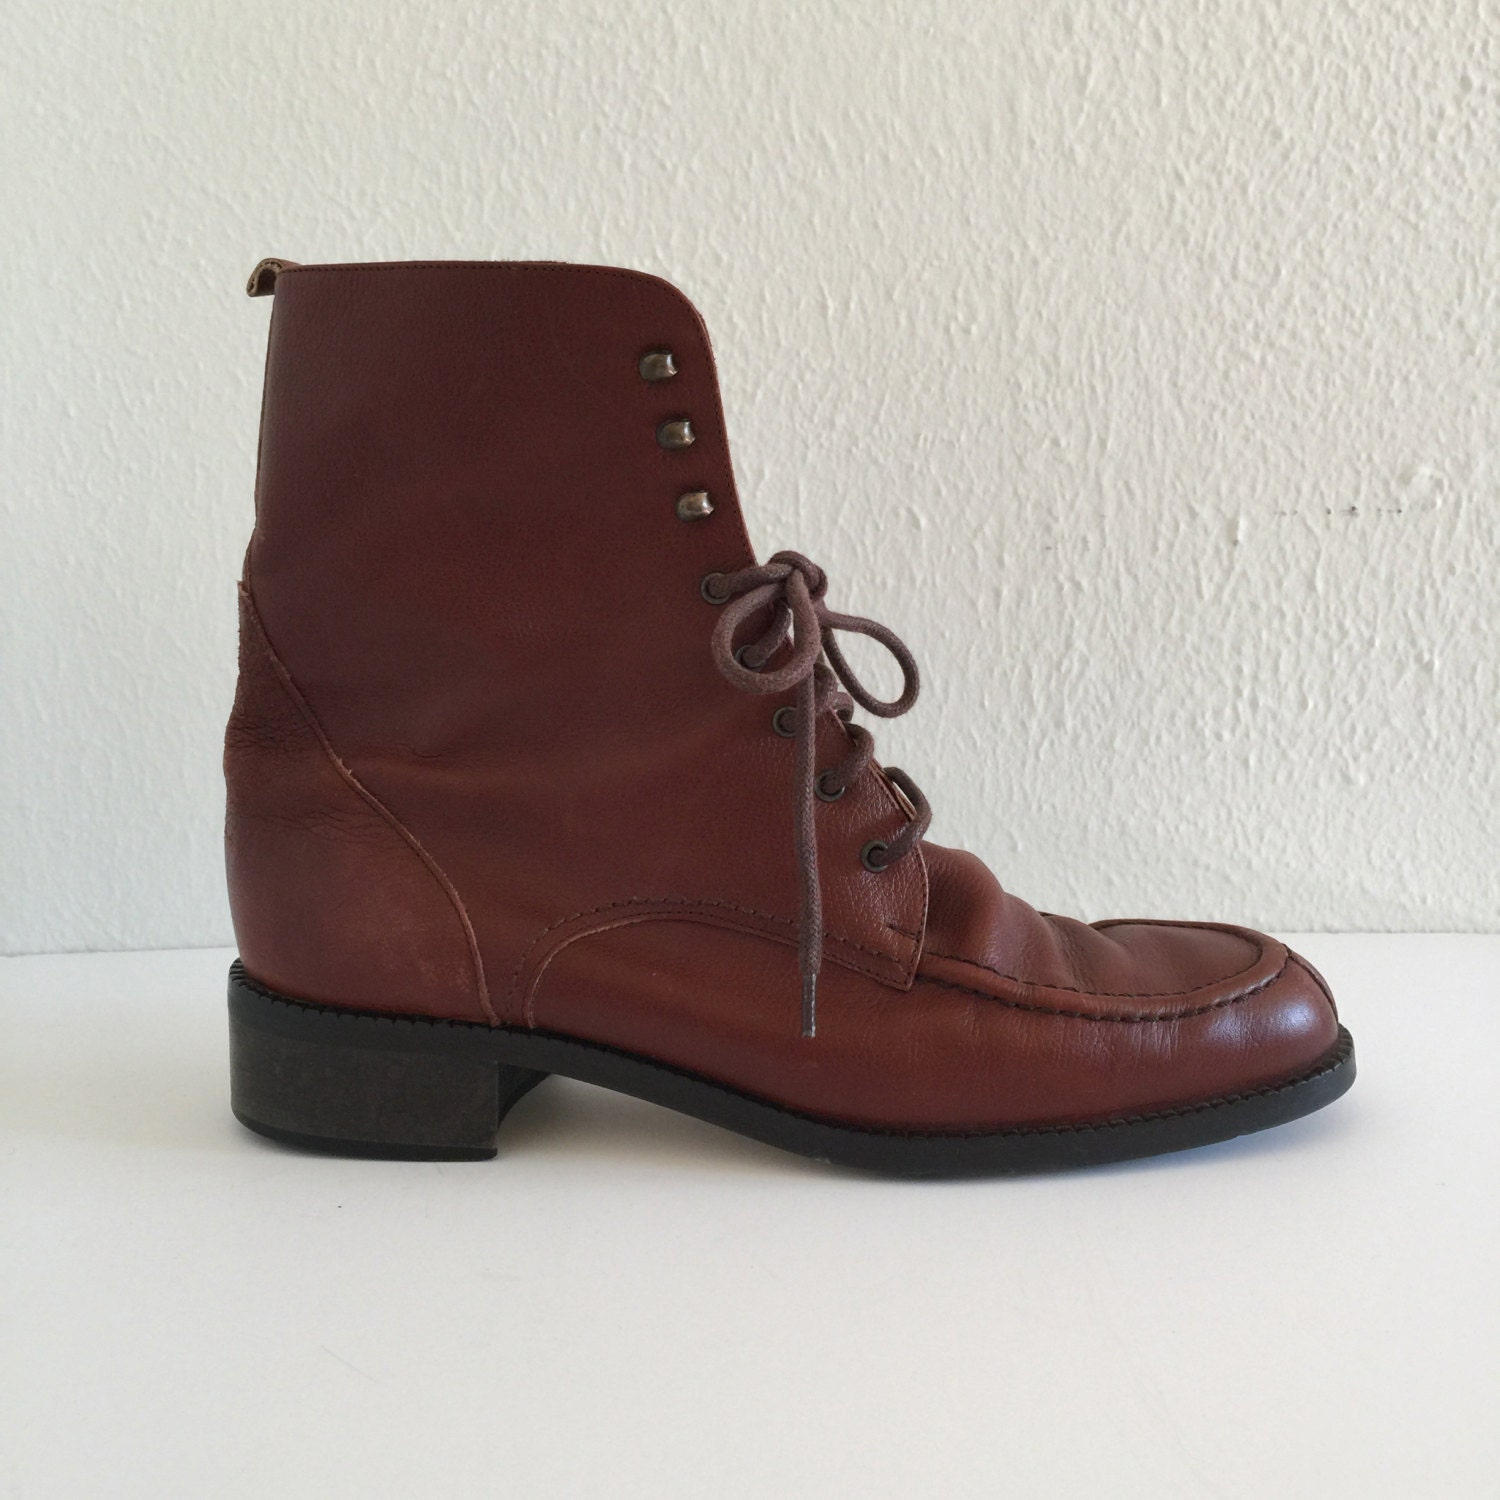 Vintage 90s Boots / 1990s Brown Leather Boots / Steve Madden |1990s Womens Boots